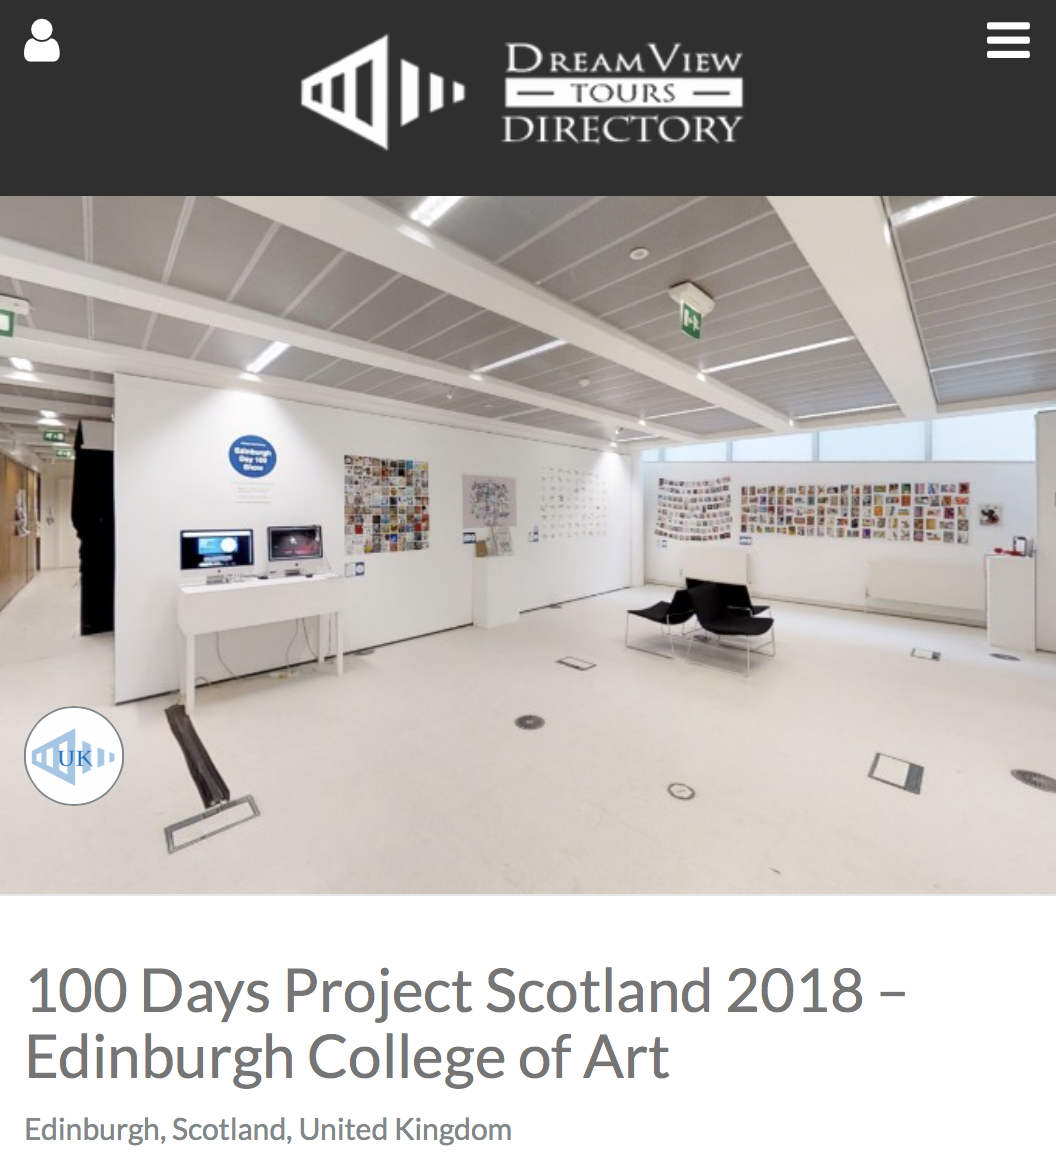 3D Tour - This link will take you to the Dreamview Directory website where you will be able to access a 3D Scan of the exhibition.